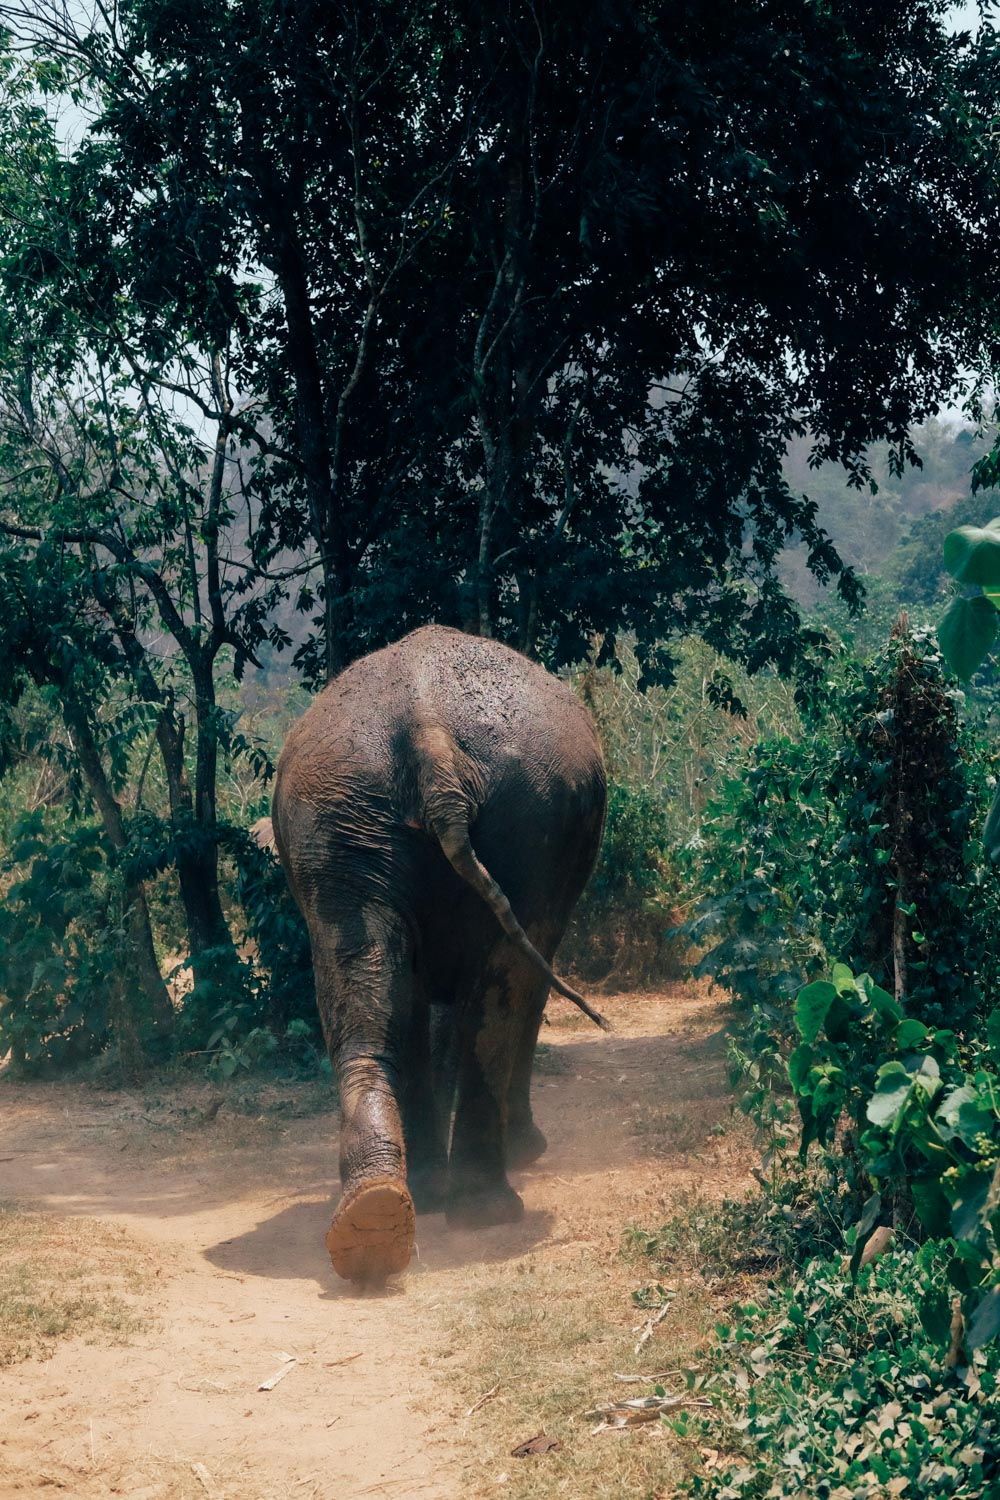 An elephant on our walk at the Elephant Nature Park